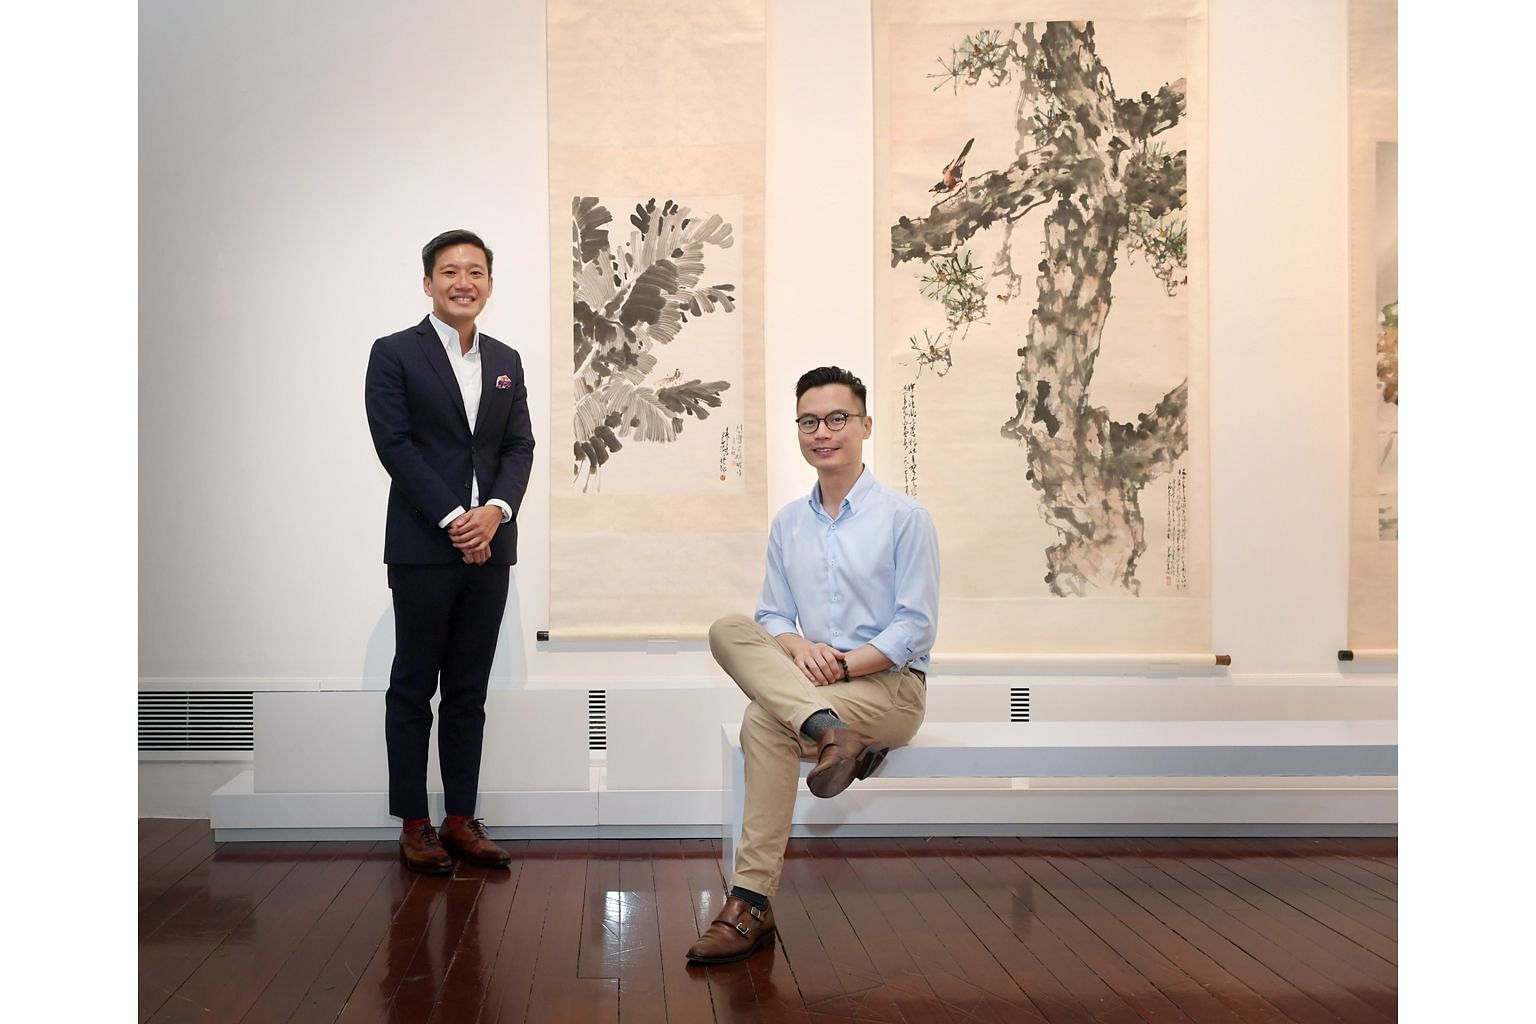 Asian Civilisations Museum director Kennie Ting (left) with Mr Conan Cheong, curator of the exhibition, Living With Ink: The Collection Of Dr Tan Tsze Chor.